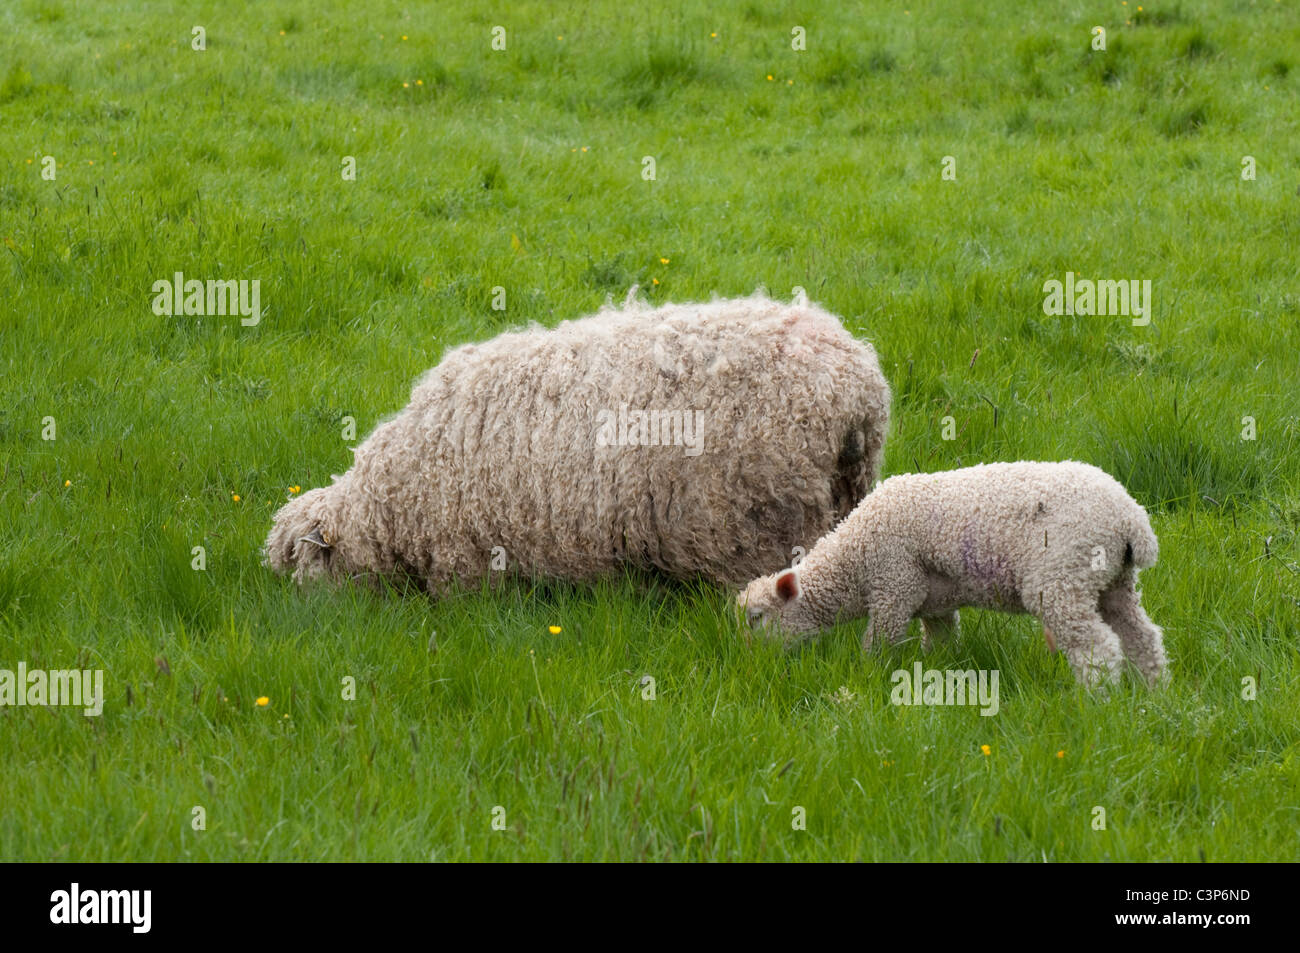 Heads down - Cotswold ( Lion ) ewe / sheep and lamb - grazing in long grass. Cotswolds, UK - Stock Image